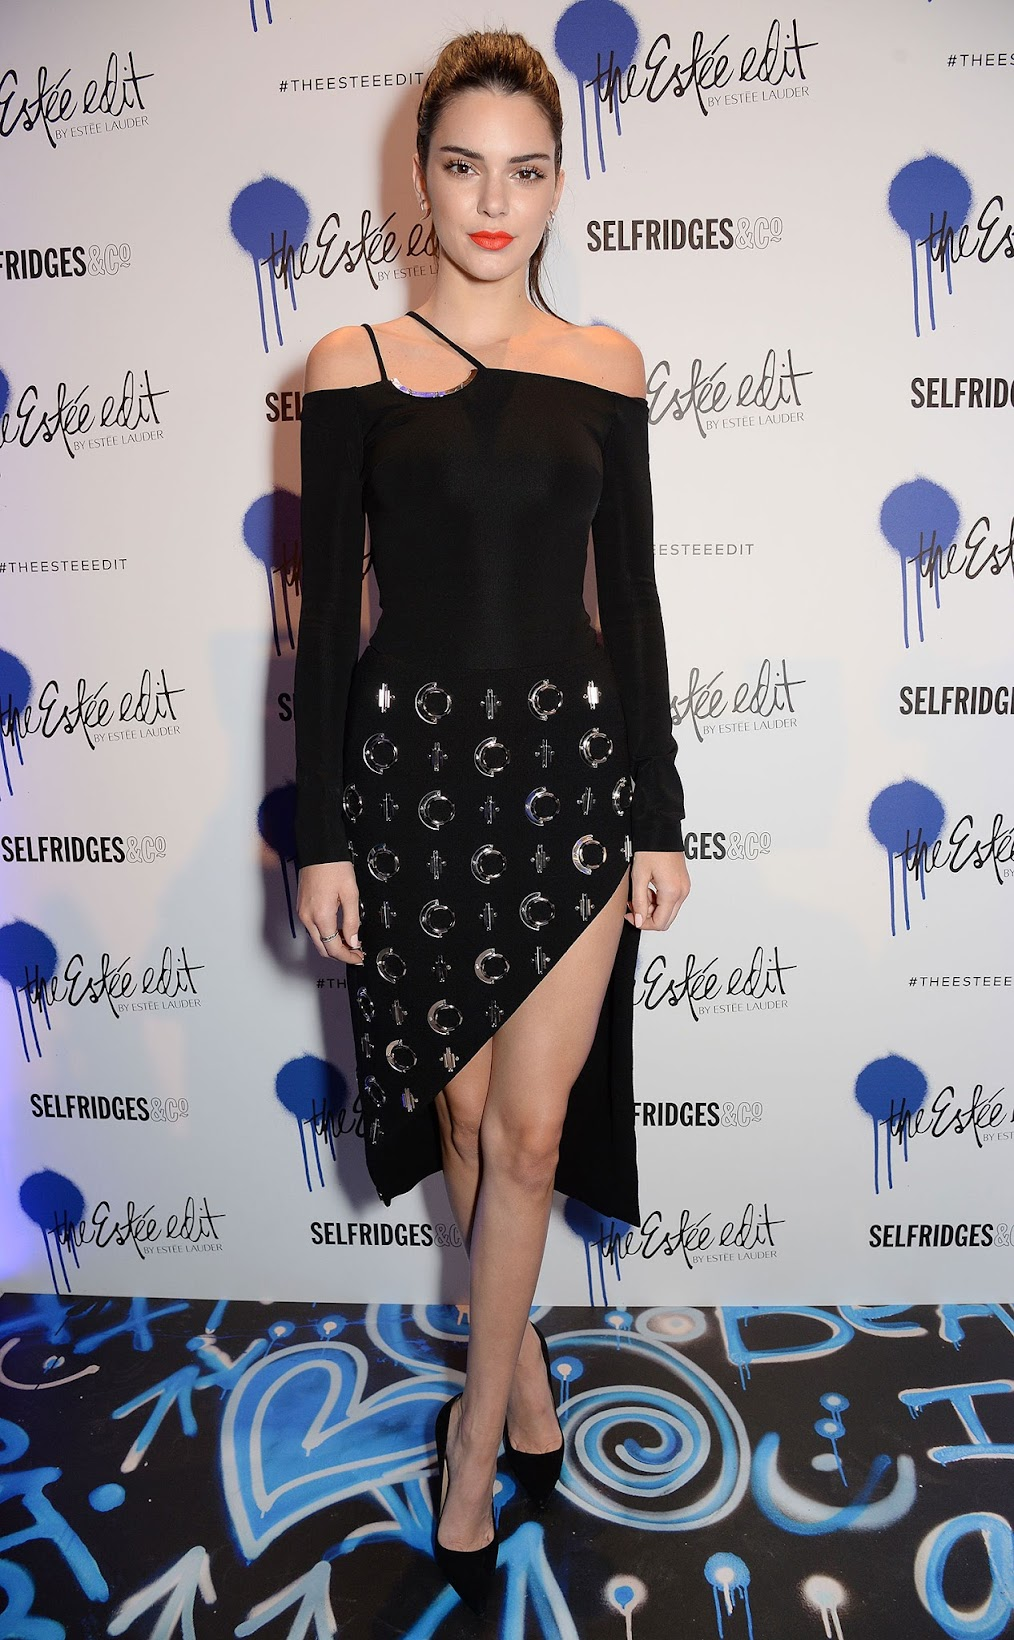 Kendall Jenner at the launch of Estee Edit in Selfriedges, London